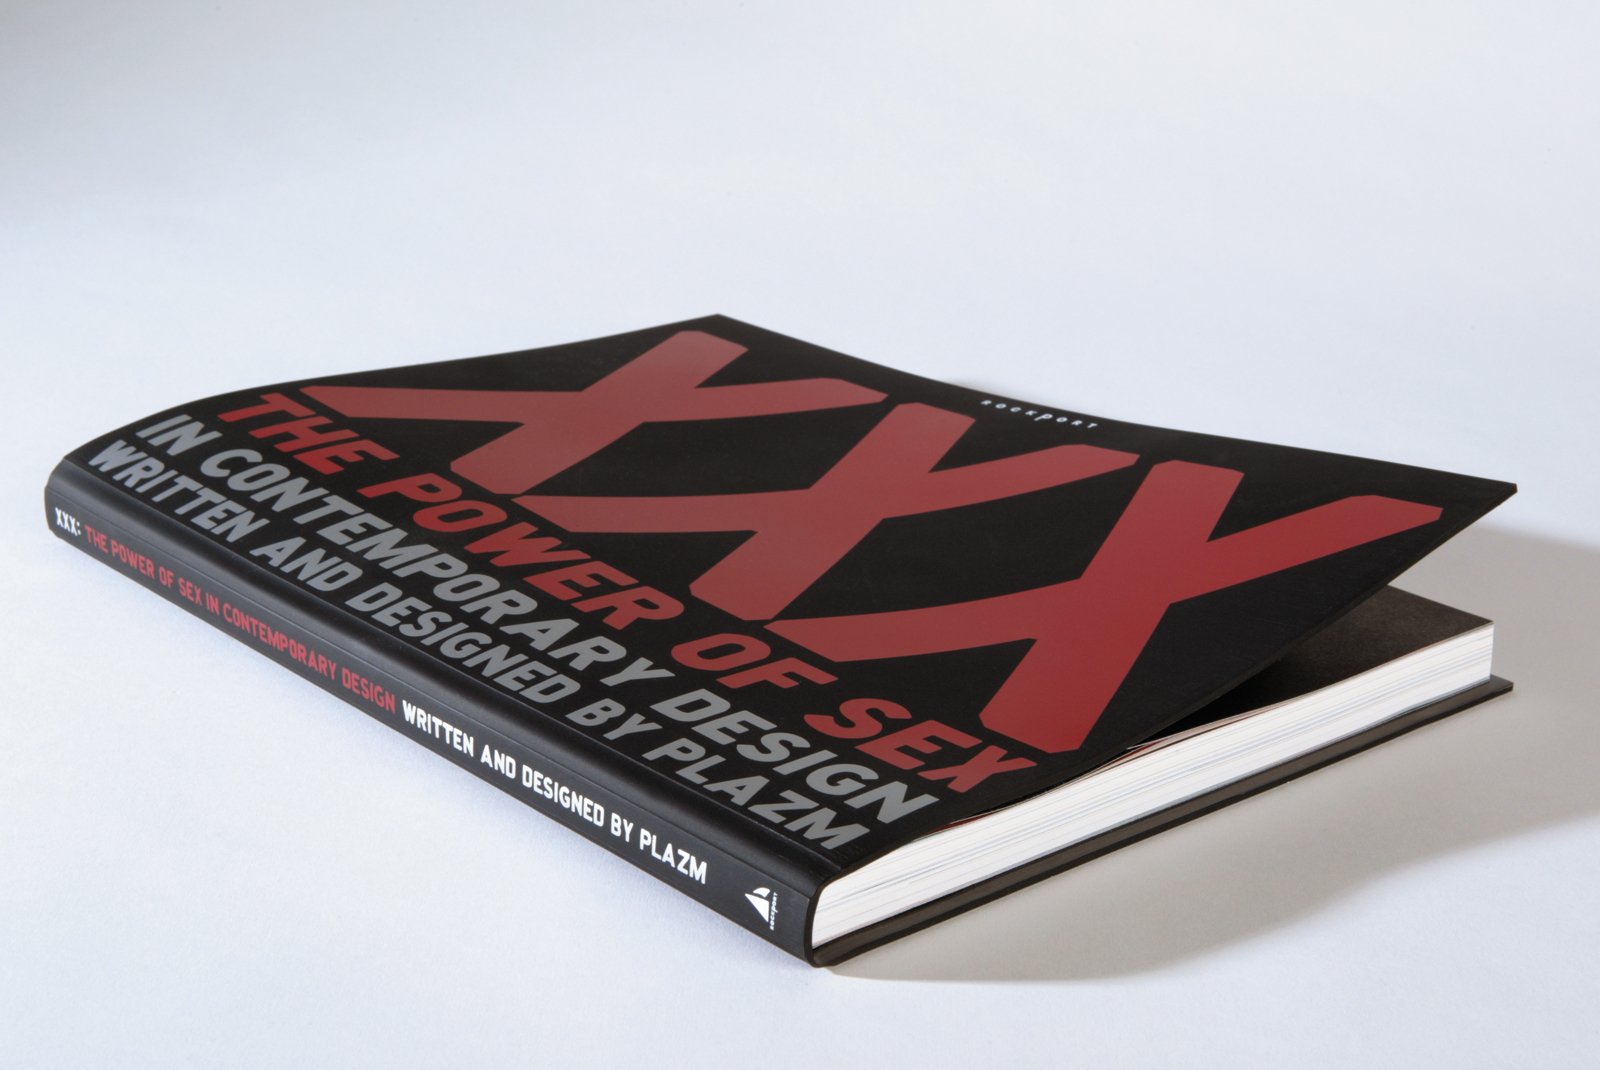 XXX: The Power of Sex in Contemporary Design, book curation and editorial design. Silkscreened rubber cover